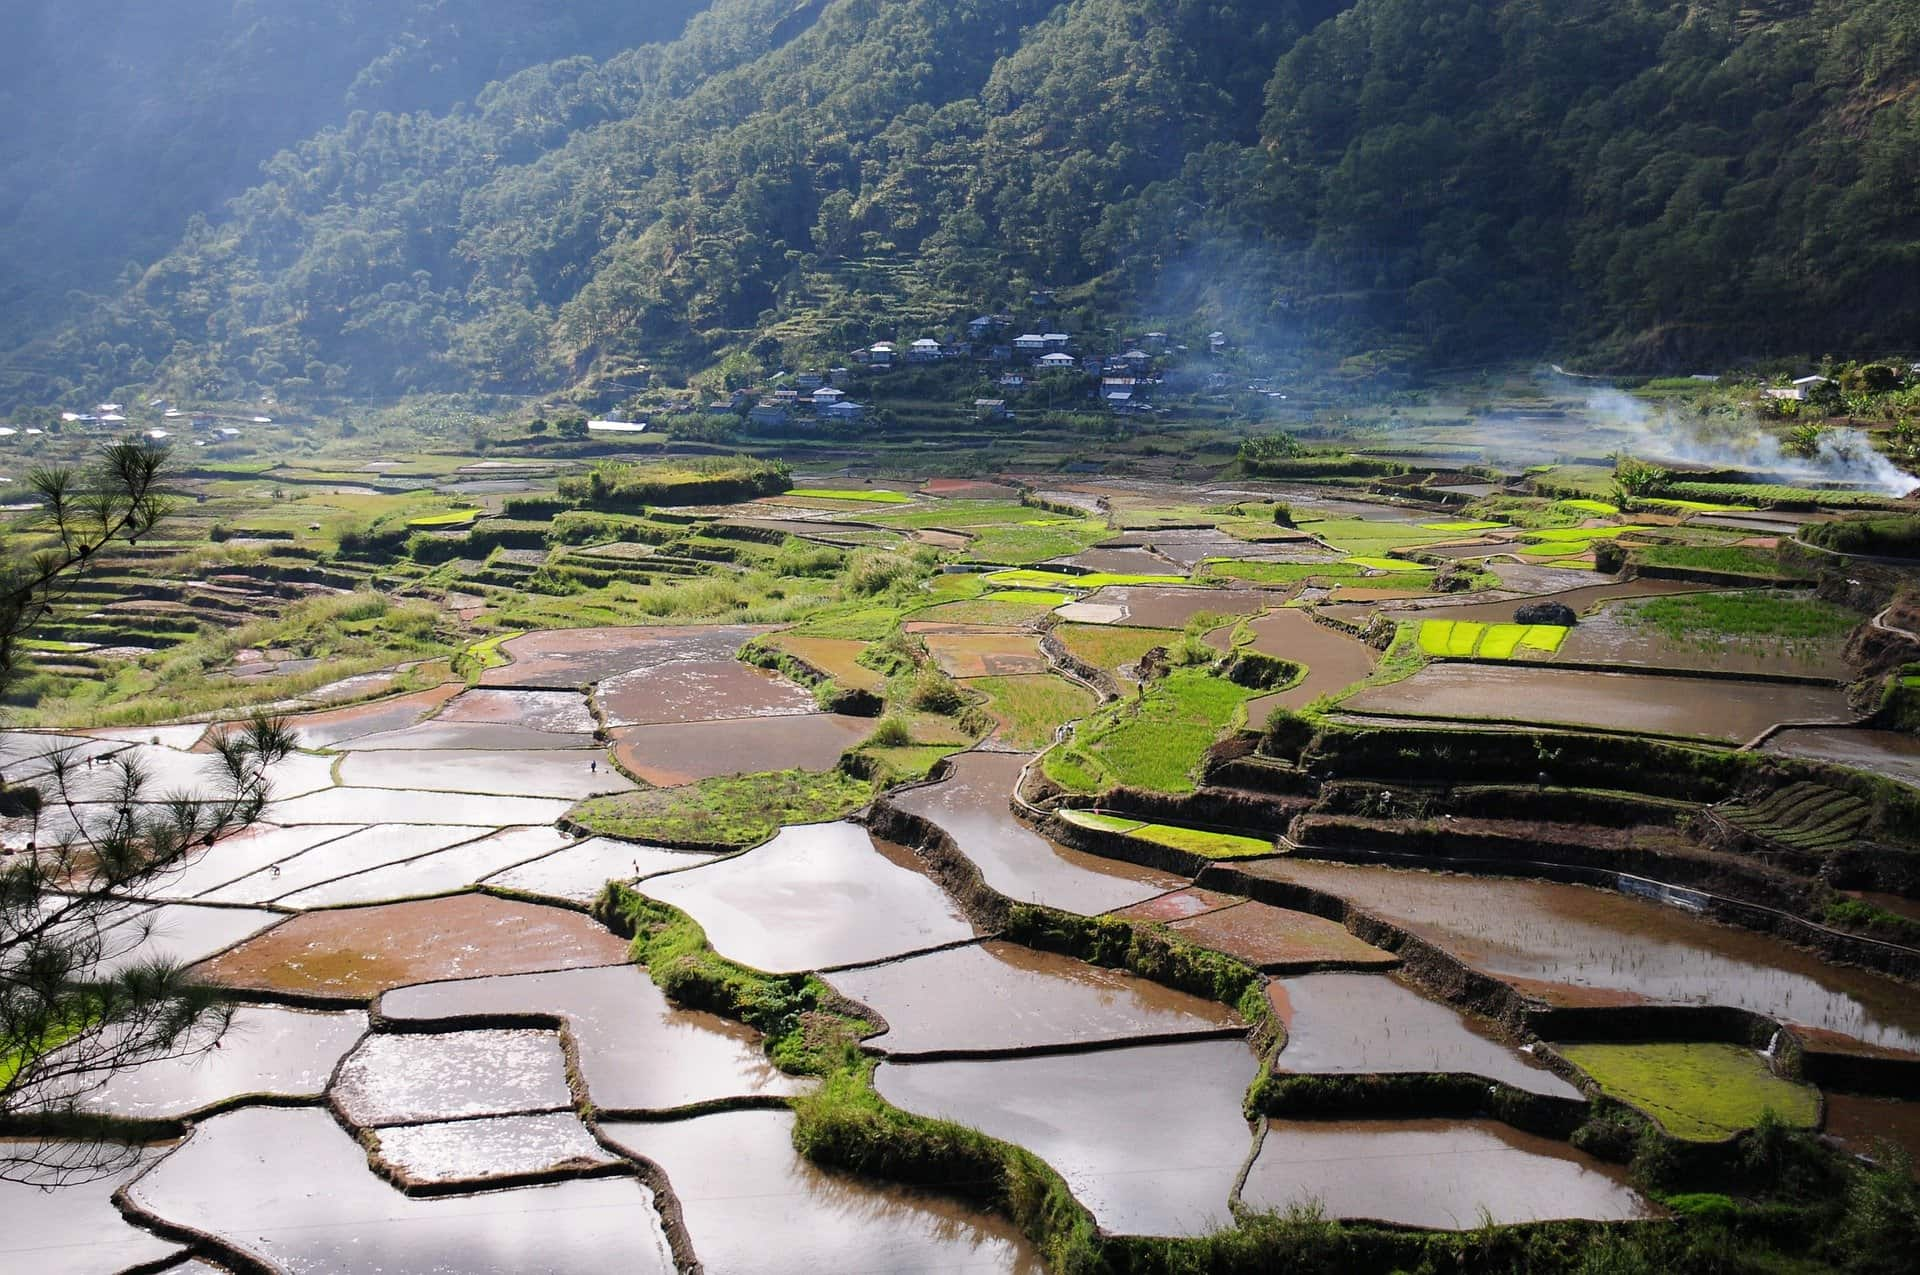 Green, steamy rice paddy landscape in Asia